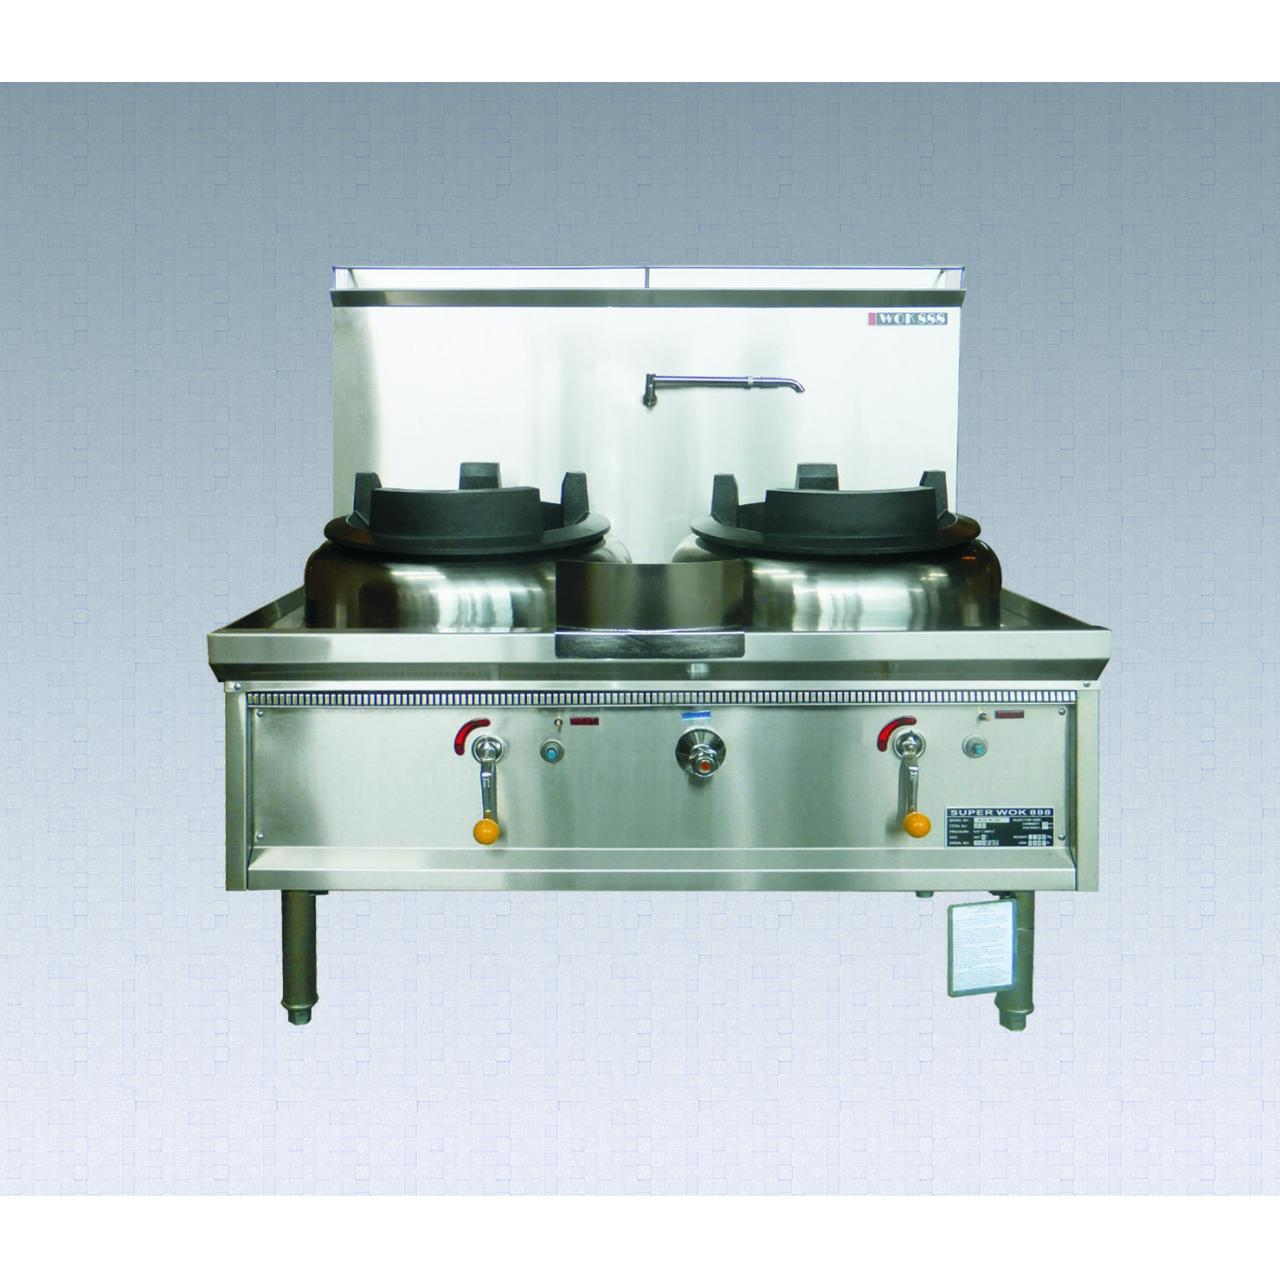 Buy cheap Inlet/Outlet Bench Super Double Burners Gas Wok Range from wholesalers